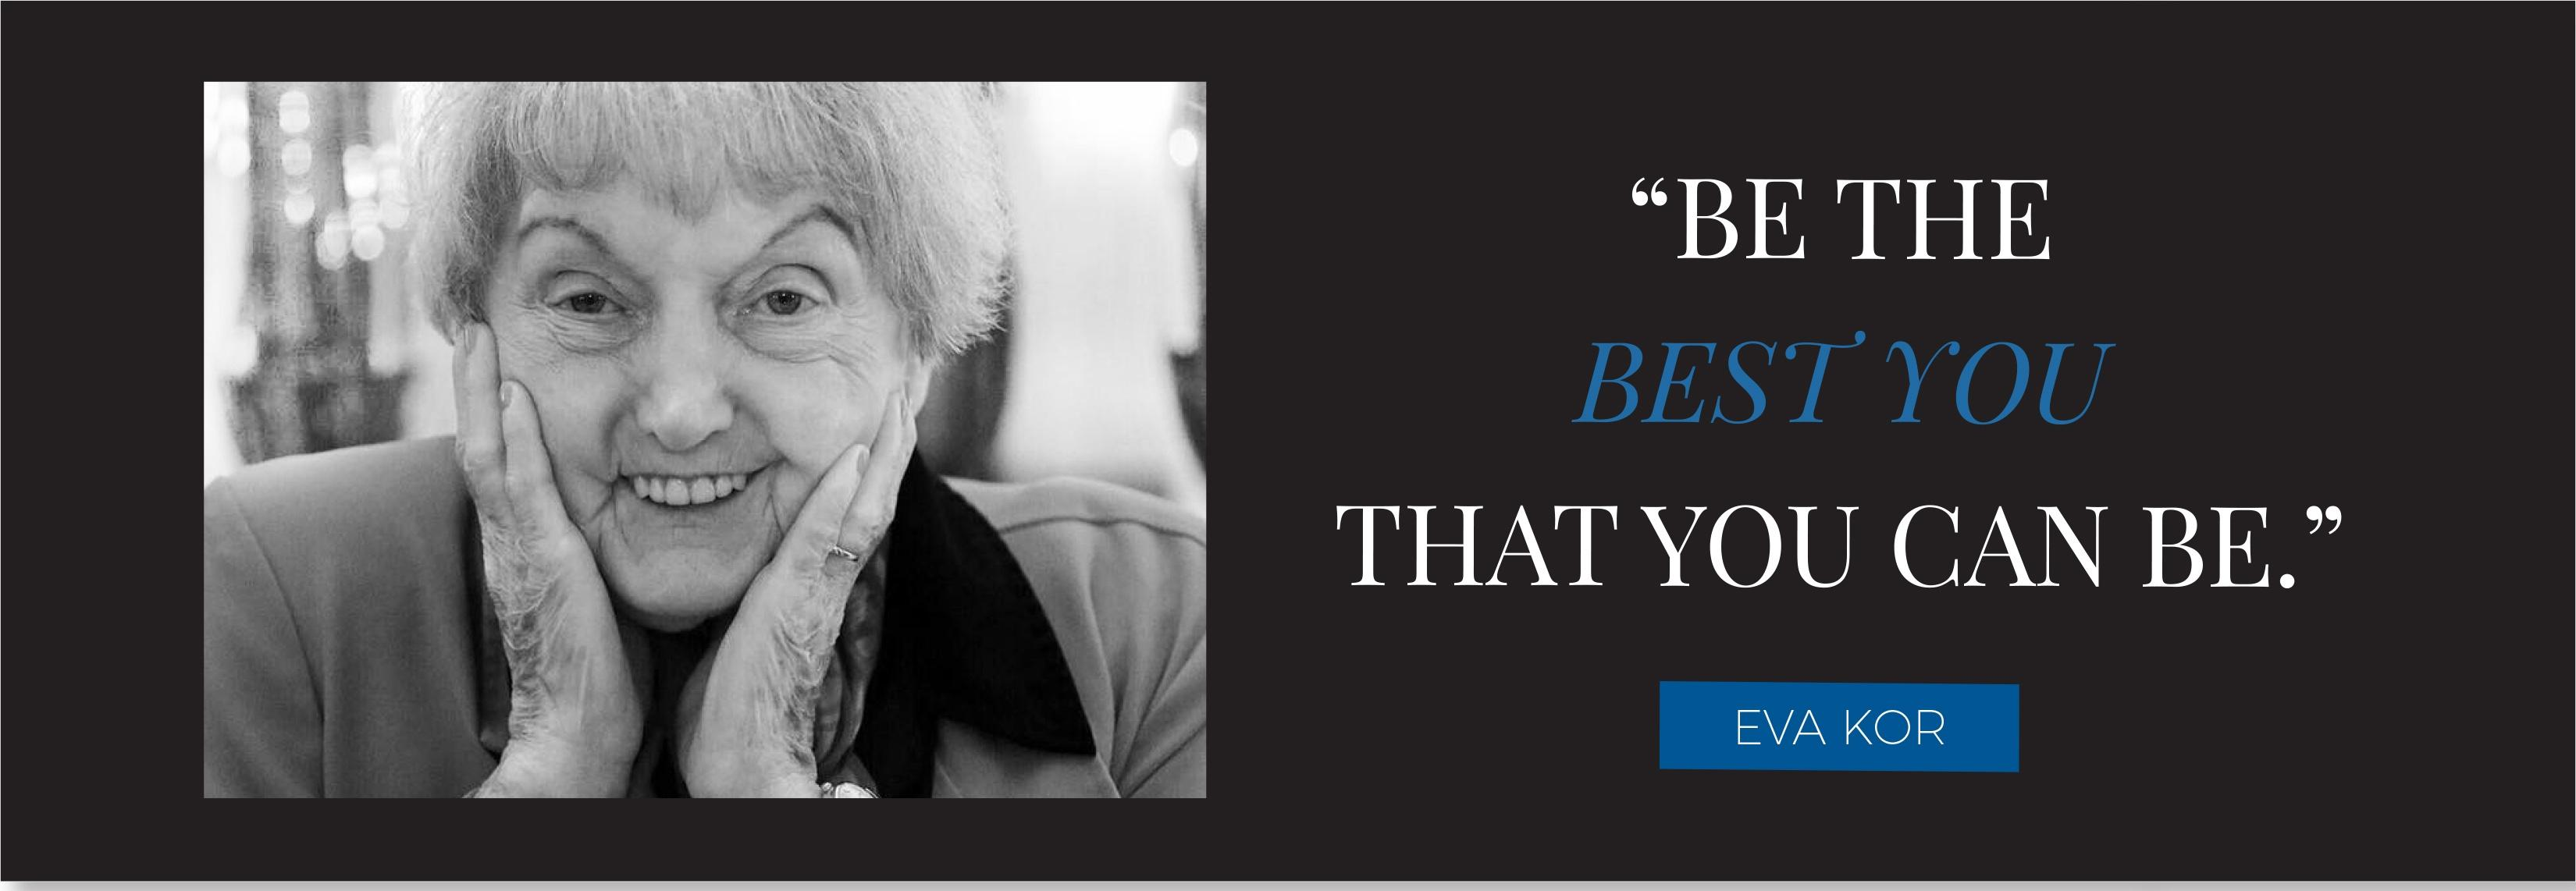 """BE THE BEST YOU THAT YOU CAN BE."" EVA KOR"